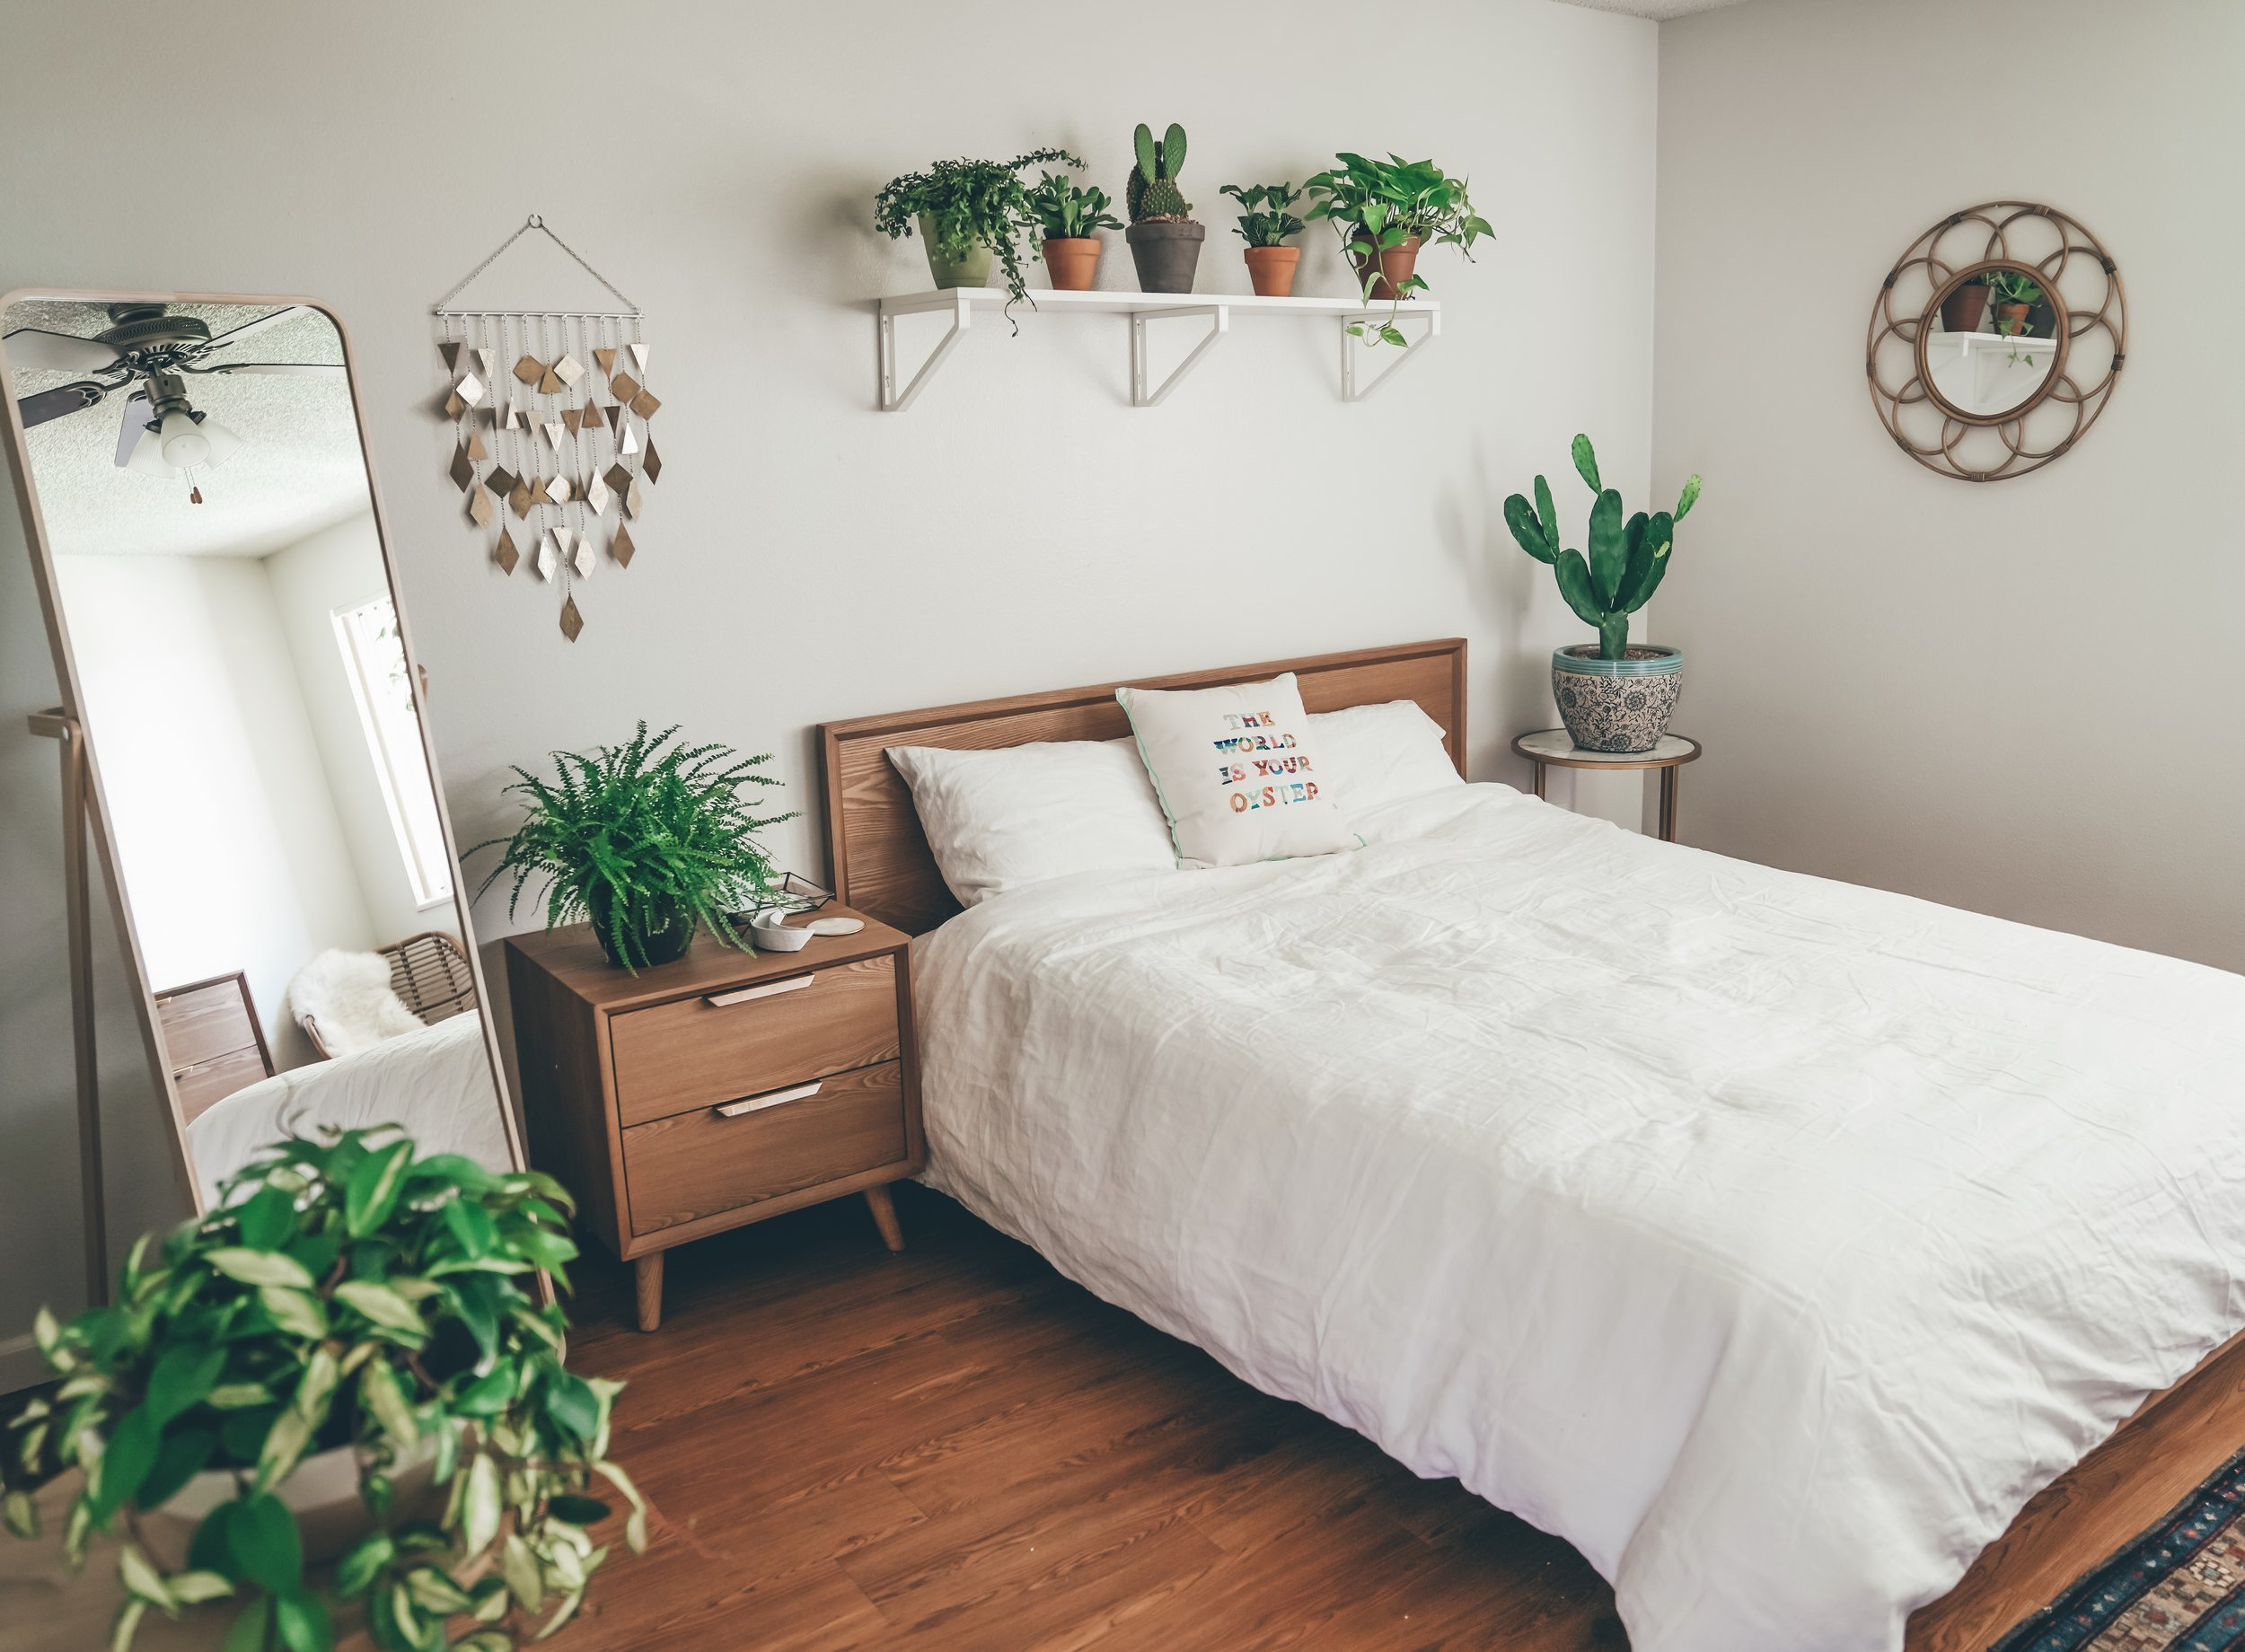 my bedroom design and why it matters - My Bedroom